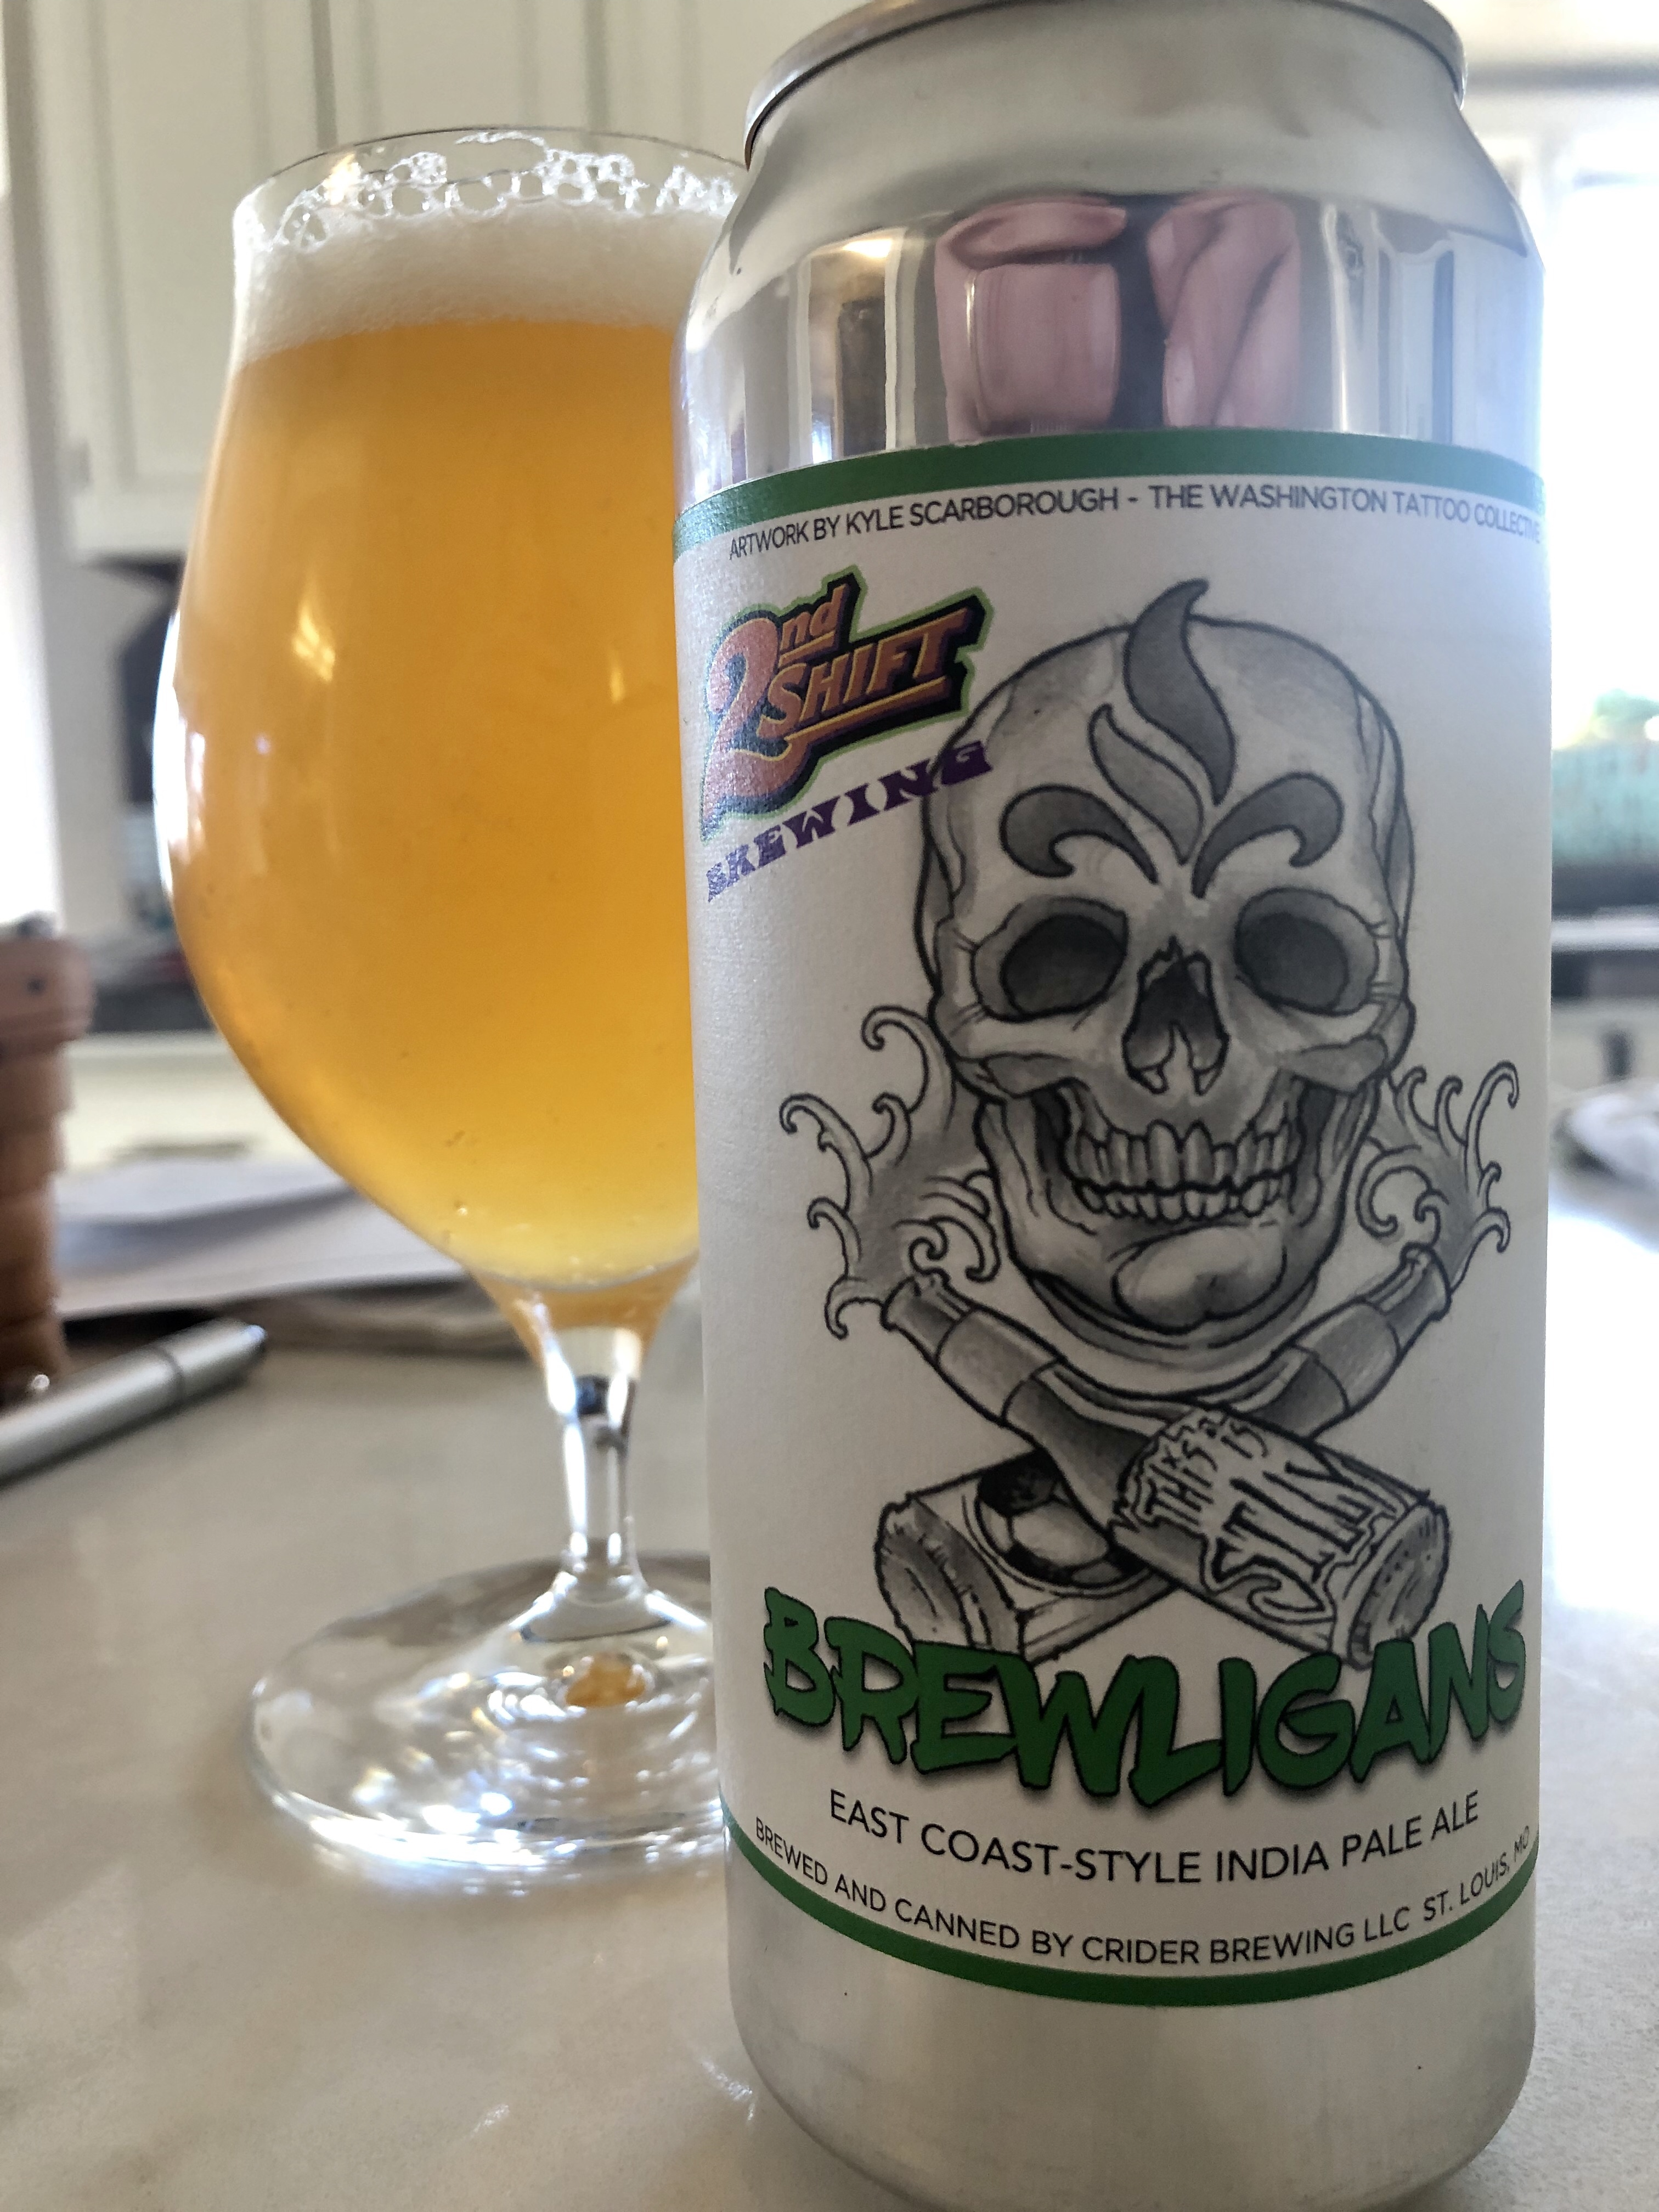 930. 2nd Shift - Brewligans East Coast Style IPA